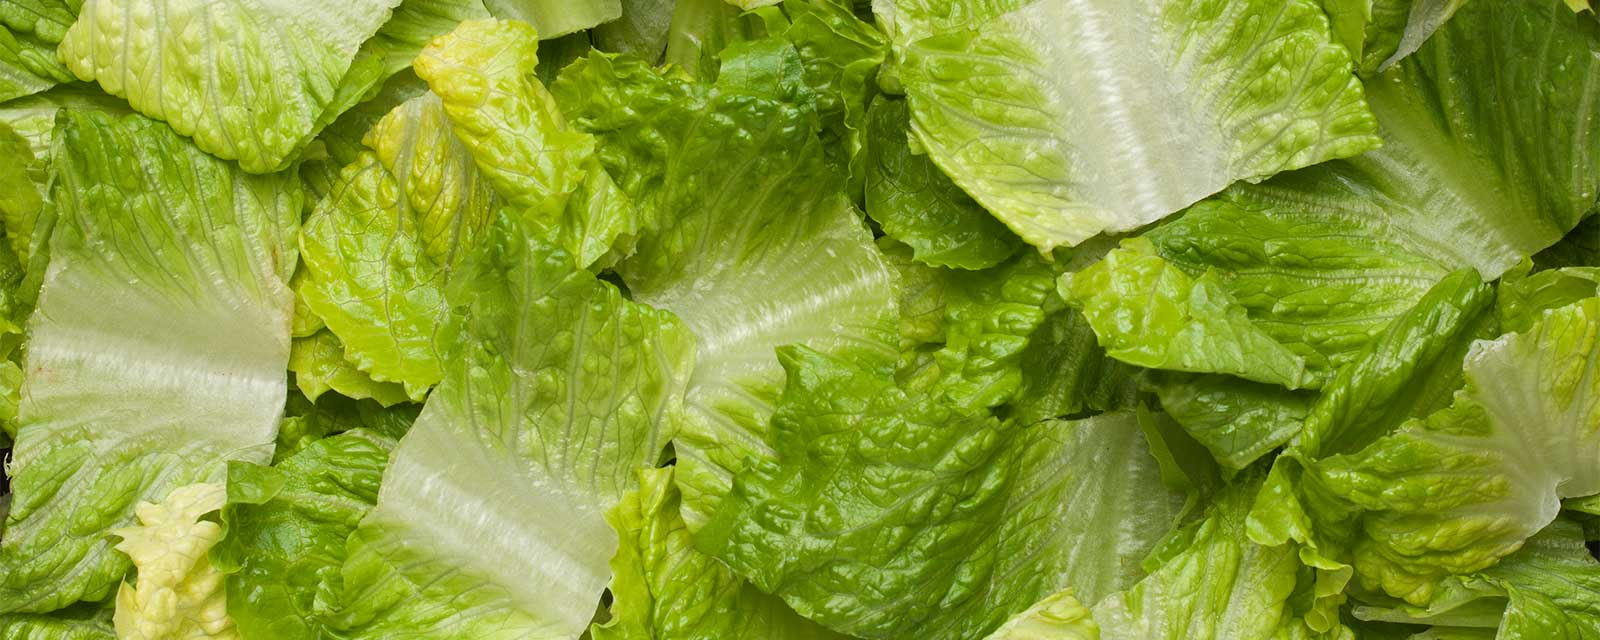 Update: Chopped Romaine now from Salinas Valley